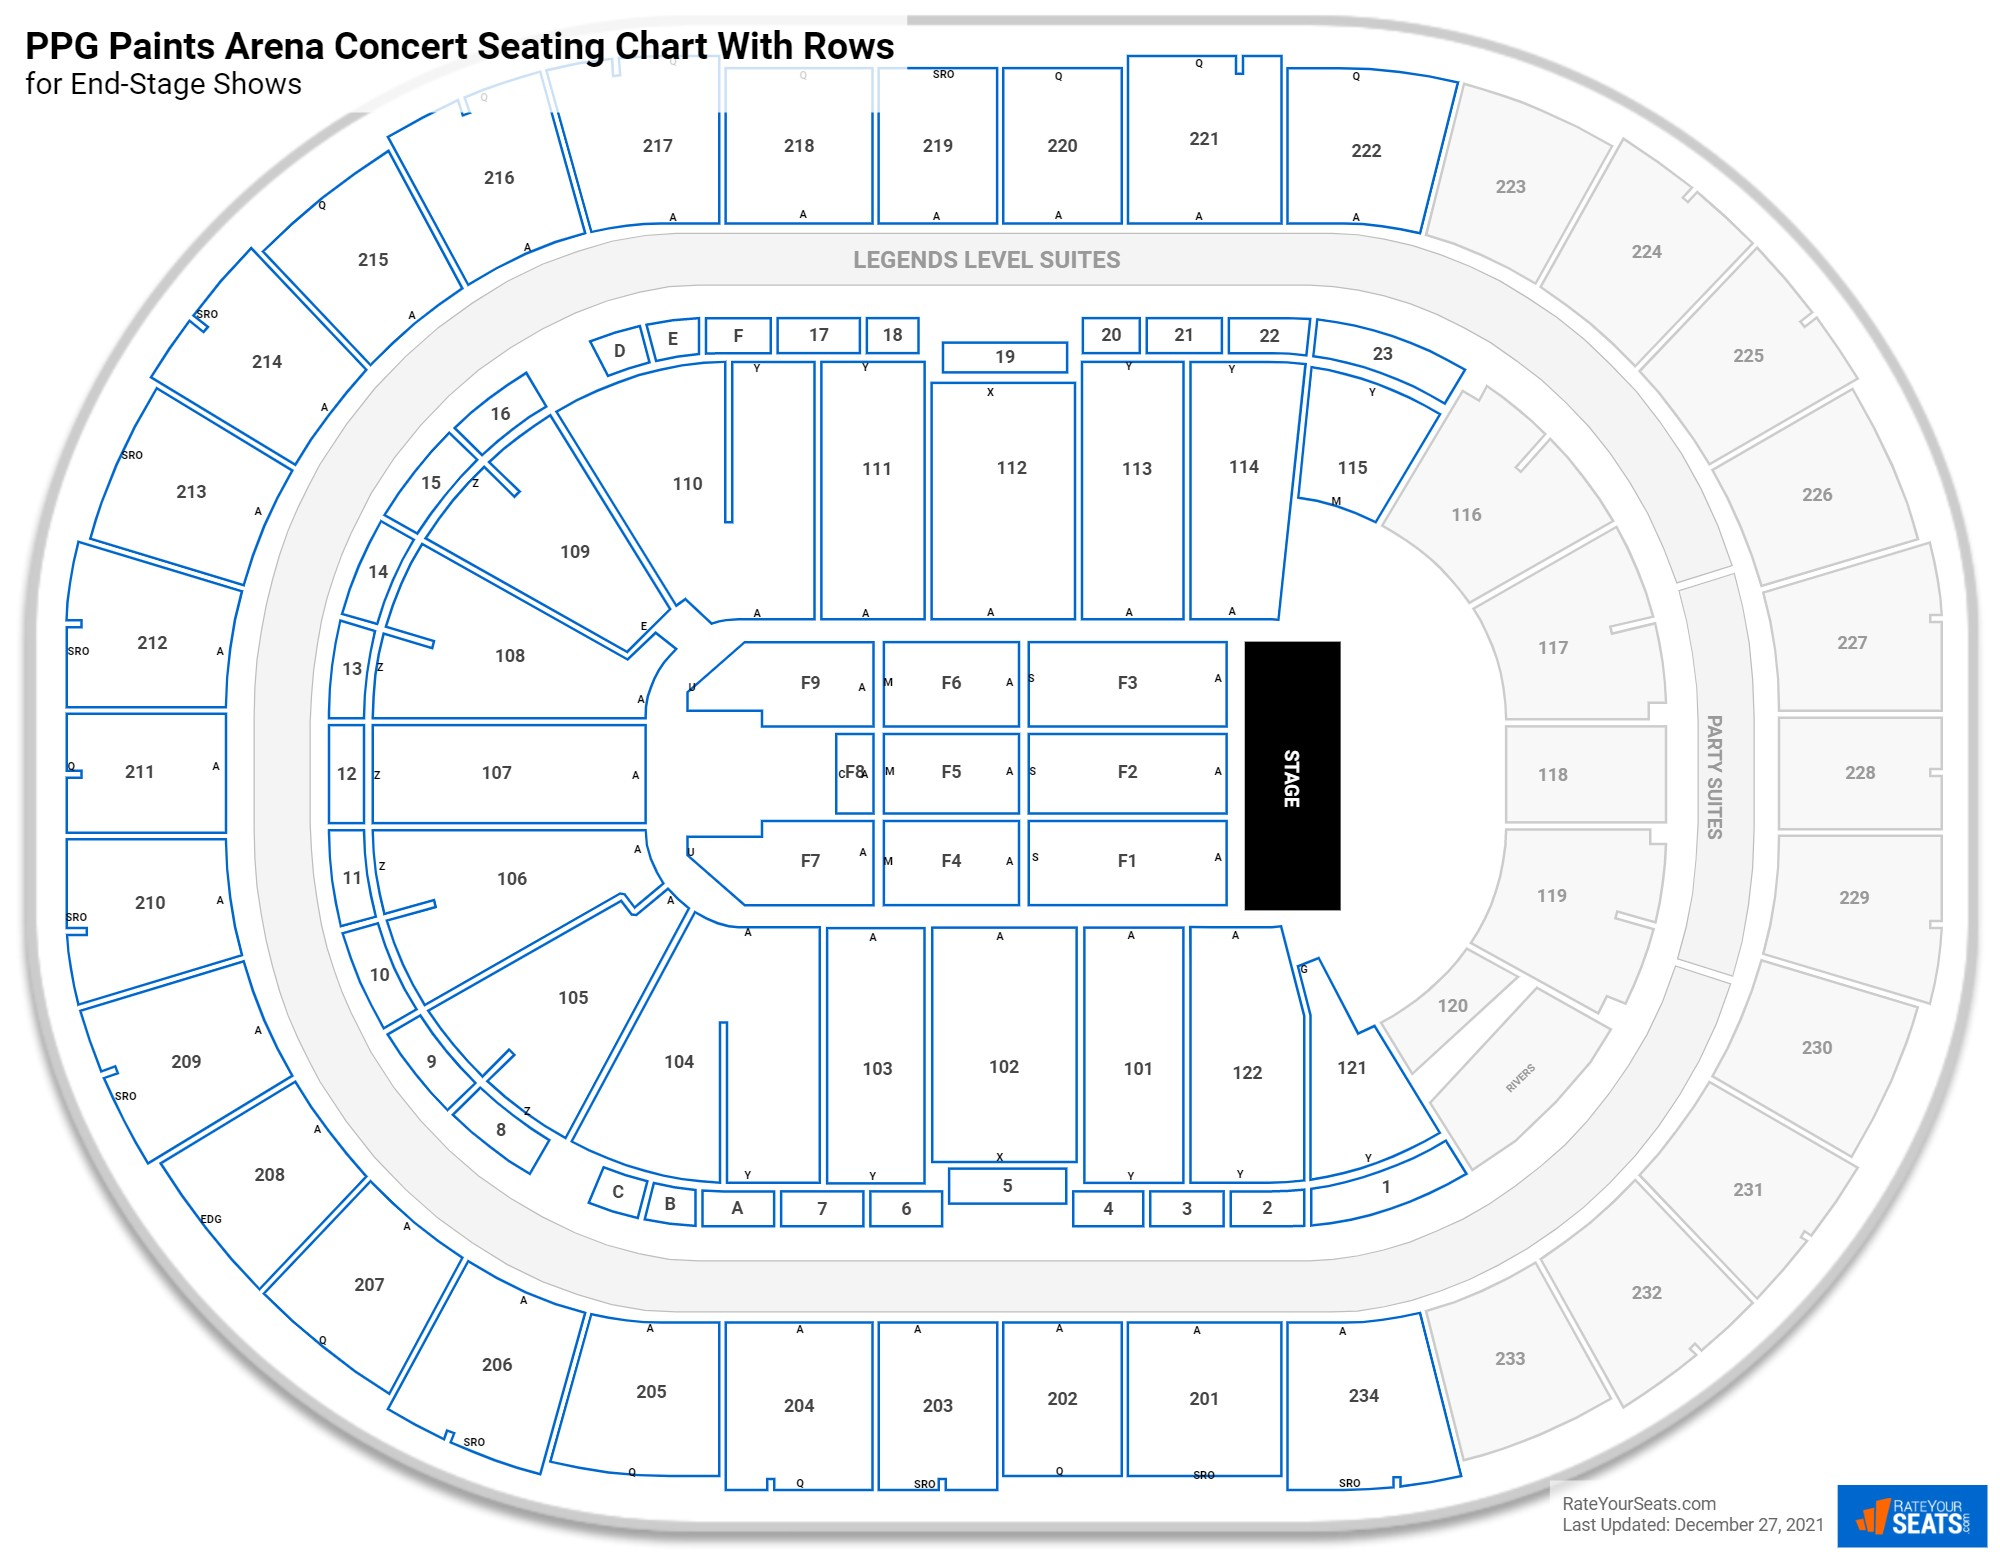 PPG Paints Arena seating chart with rows concert